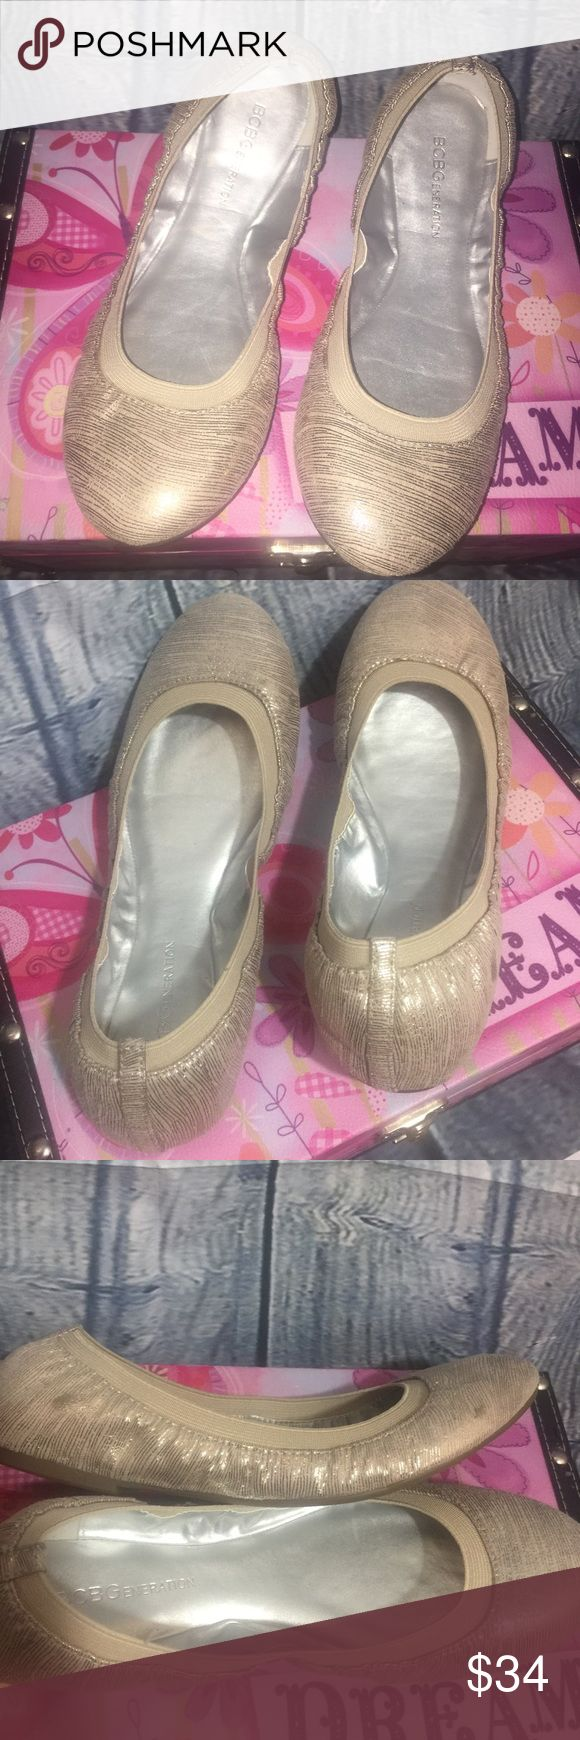 BCBGeneration Ballerina Flats Flex  Beige Sz 6.5M BCBGeneration Women's Ballerina Flats Flex Metallic Beige Size 6.5M. Minor signs of wear, minor scuffs as shown in the third picture.Very comfortable.In very good condition. BCBGeneration Shoes Flats & Loafers